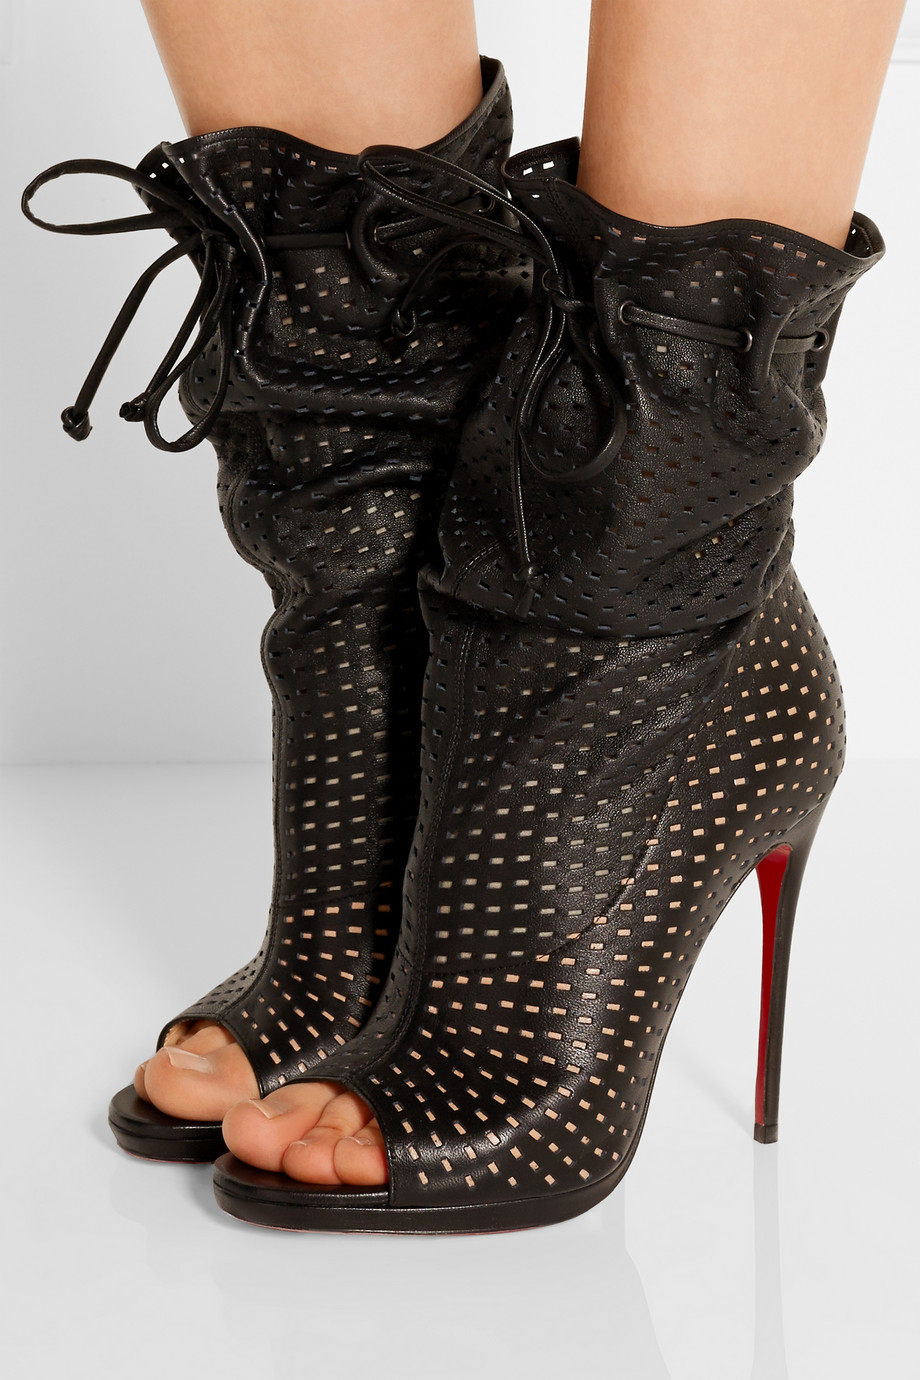 christian louboutin ankle boots 2015